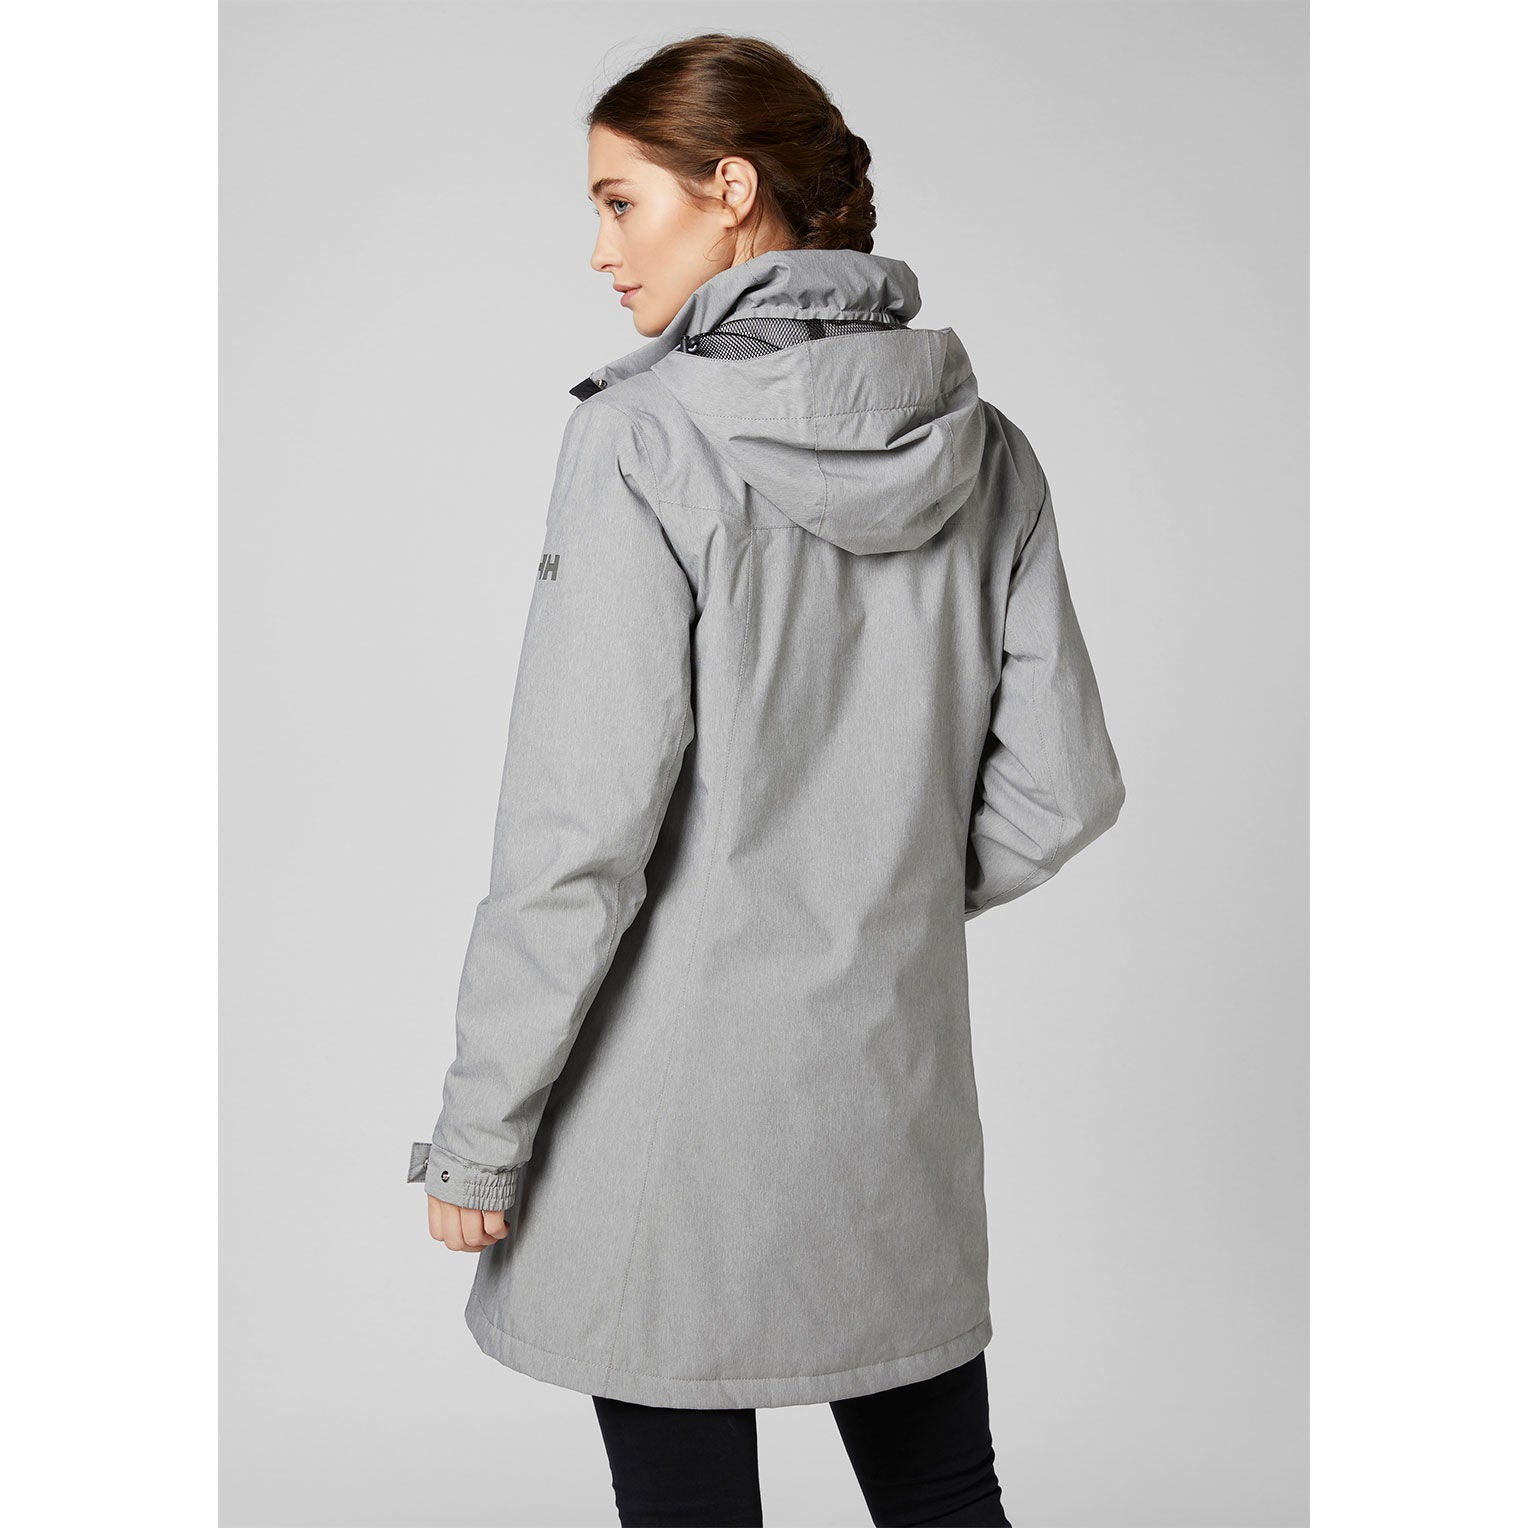 boy 100% high quality 100% top quality Helly Hansen Womens Aden Insulated Coat